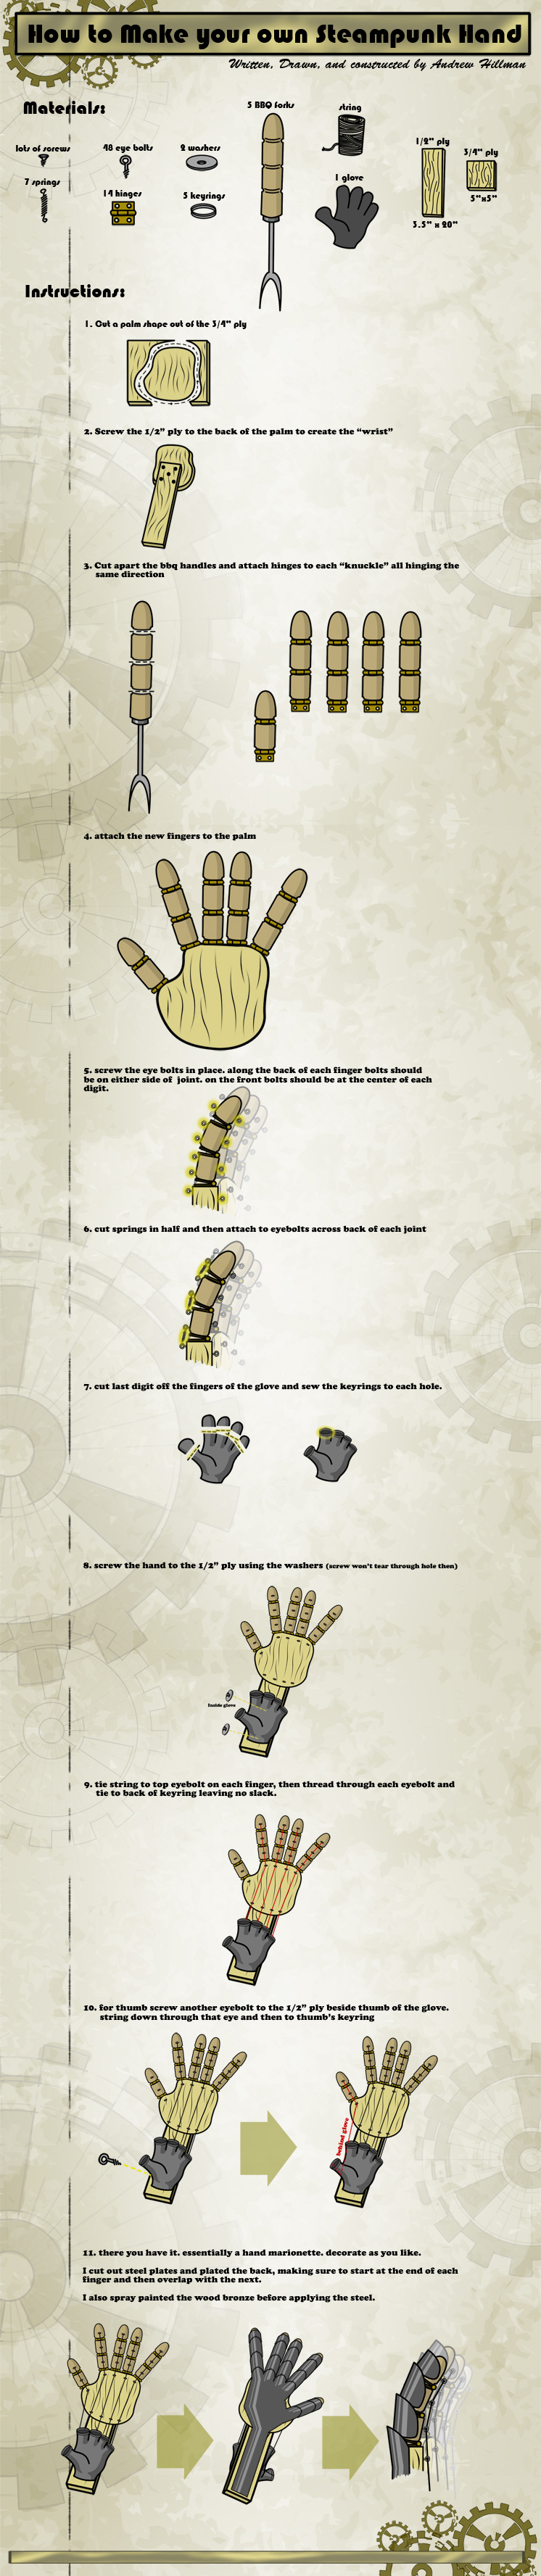 diy-steampunk-mechanical-hand-chart